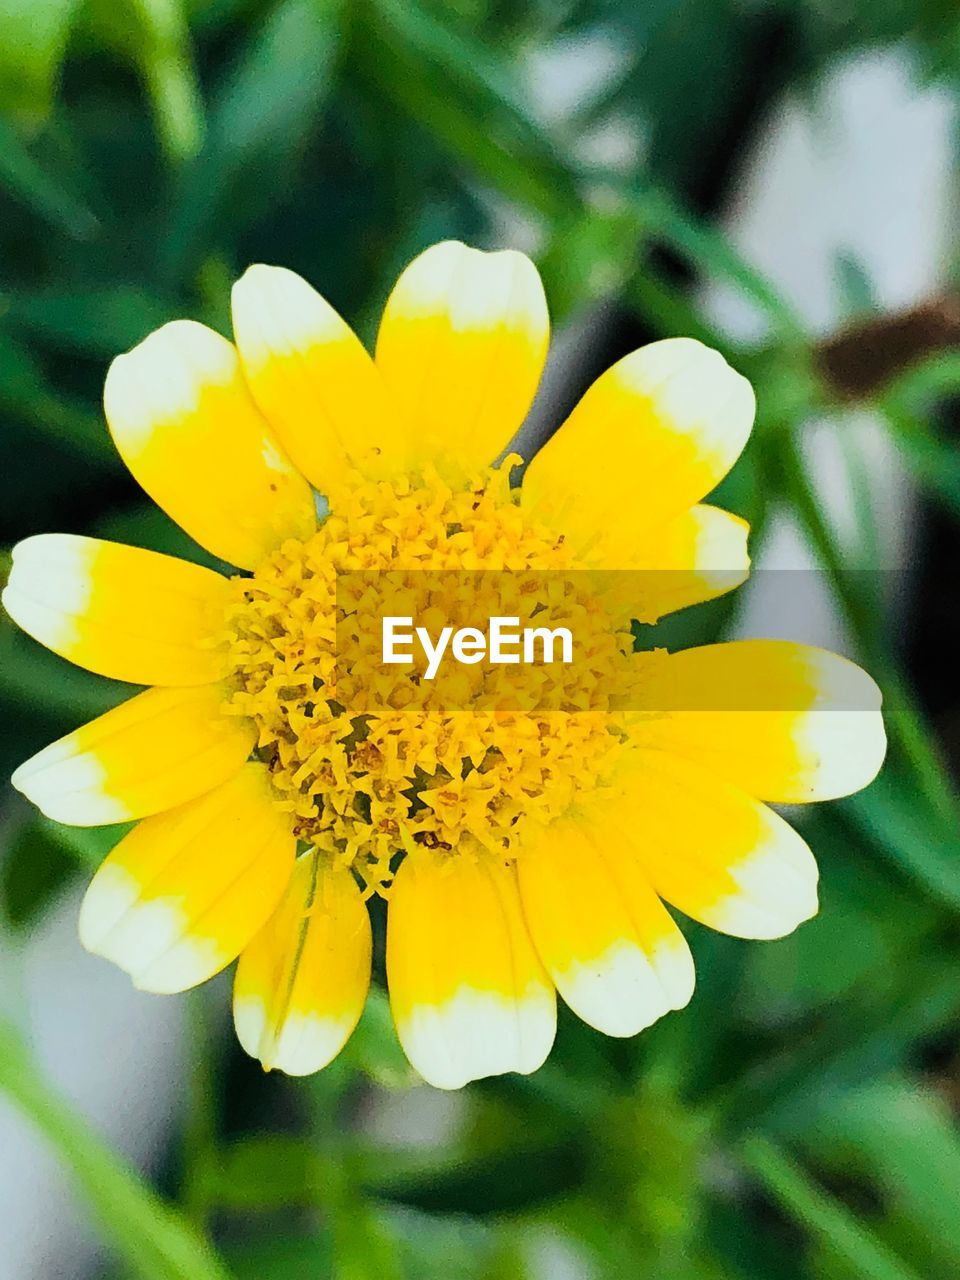 flower, yellow, flowering plant, plant, fragility, beauty in nature, vulnerability, freshness, petal, growth, close-up, inflorescence, flower head, focus on foreground, day, nature, no people, selective focus, outdoors, pollen